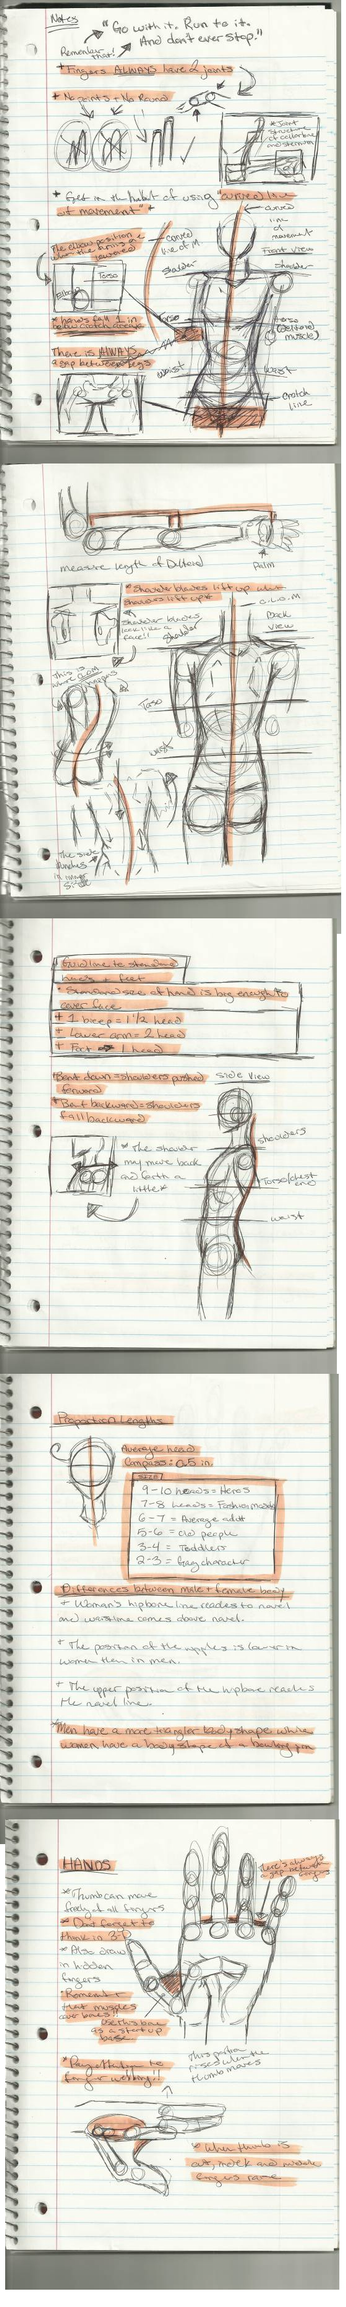 My Anatomy Notes by edwardsuoh13